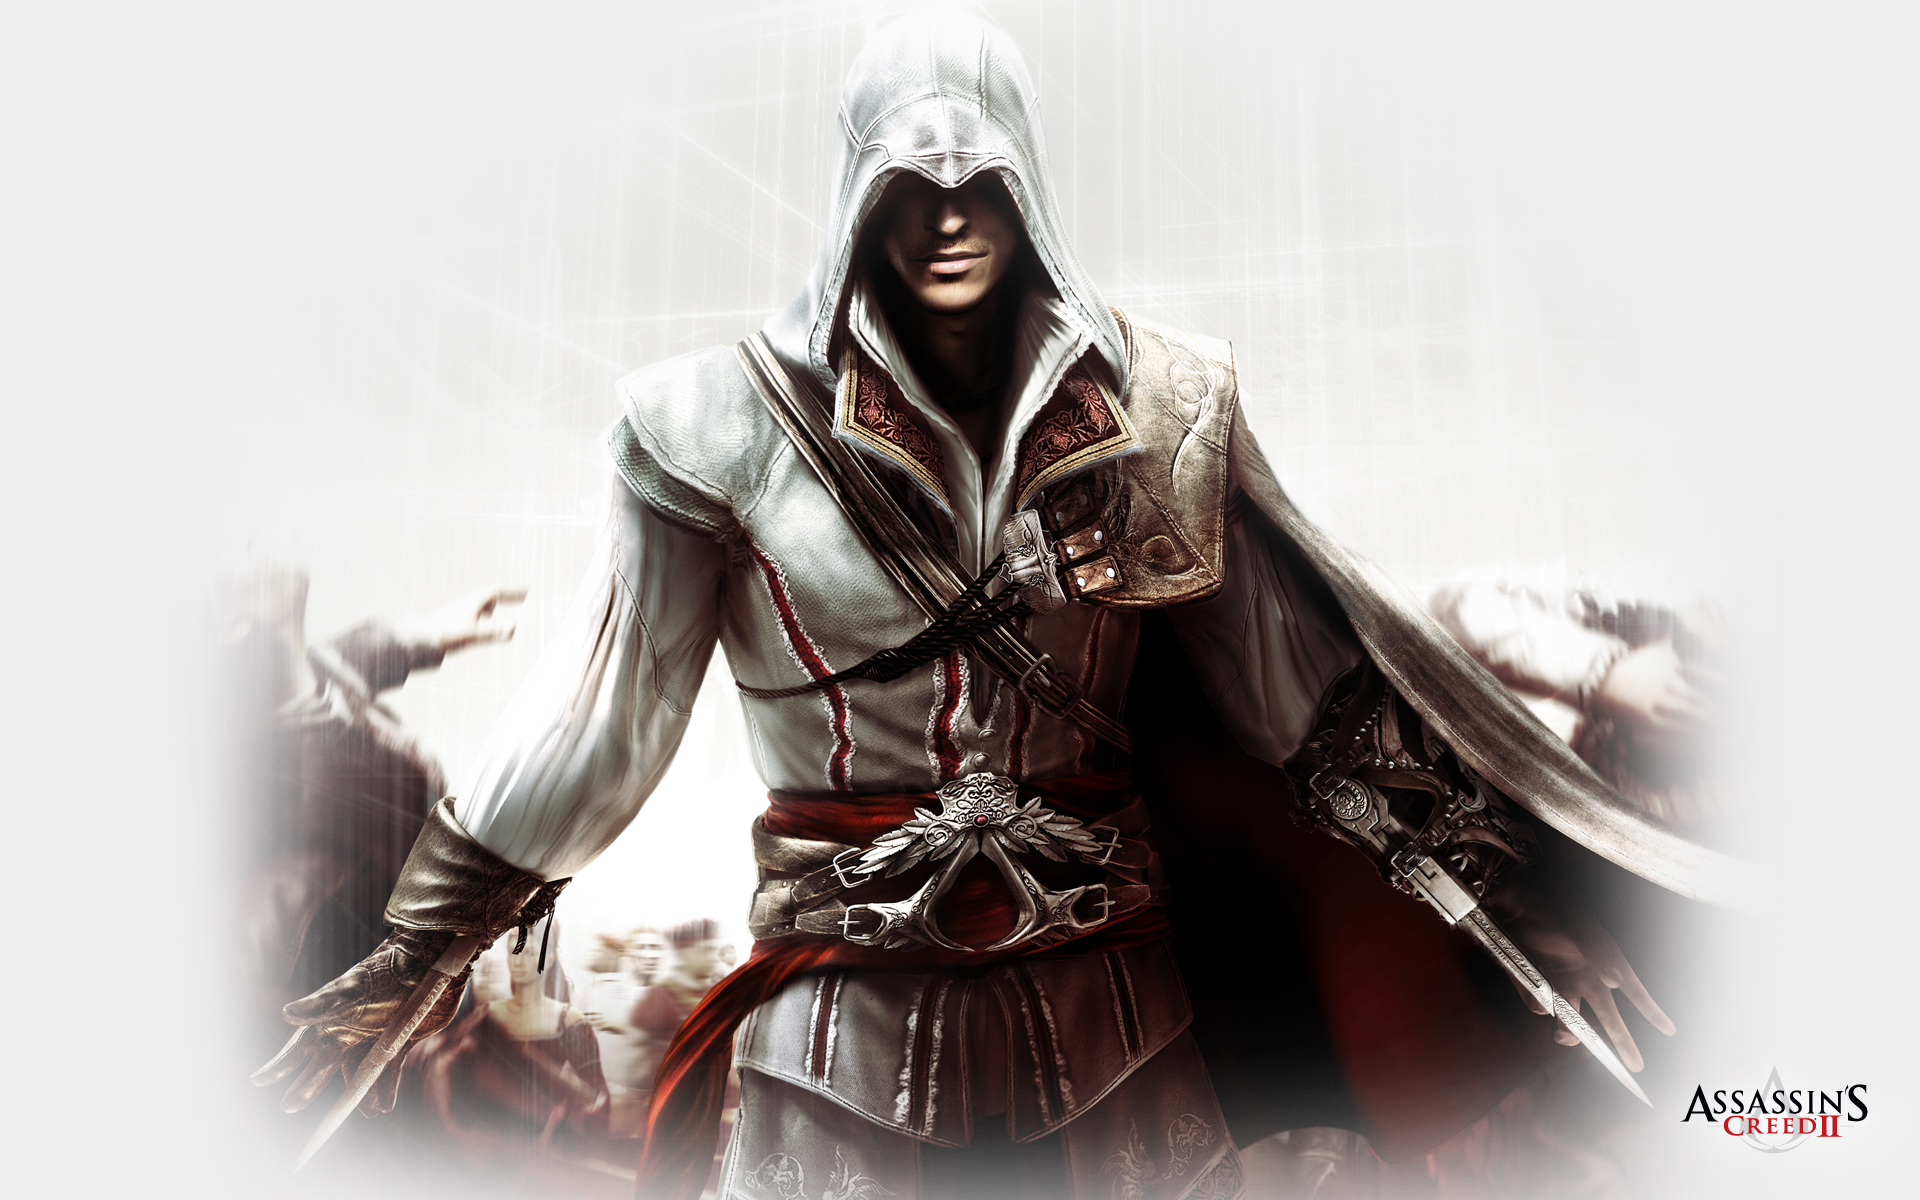 Assassins Creed Brotherhood Wallpaper Full Hd 1080p Picture 1920x1200